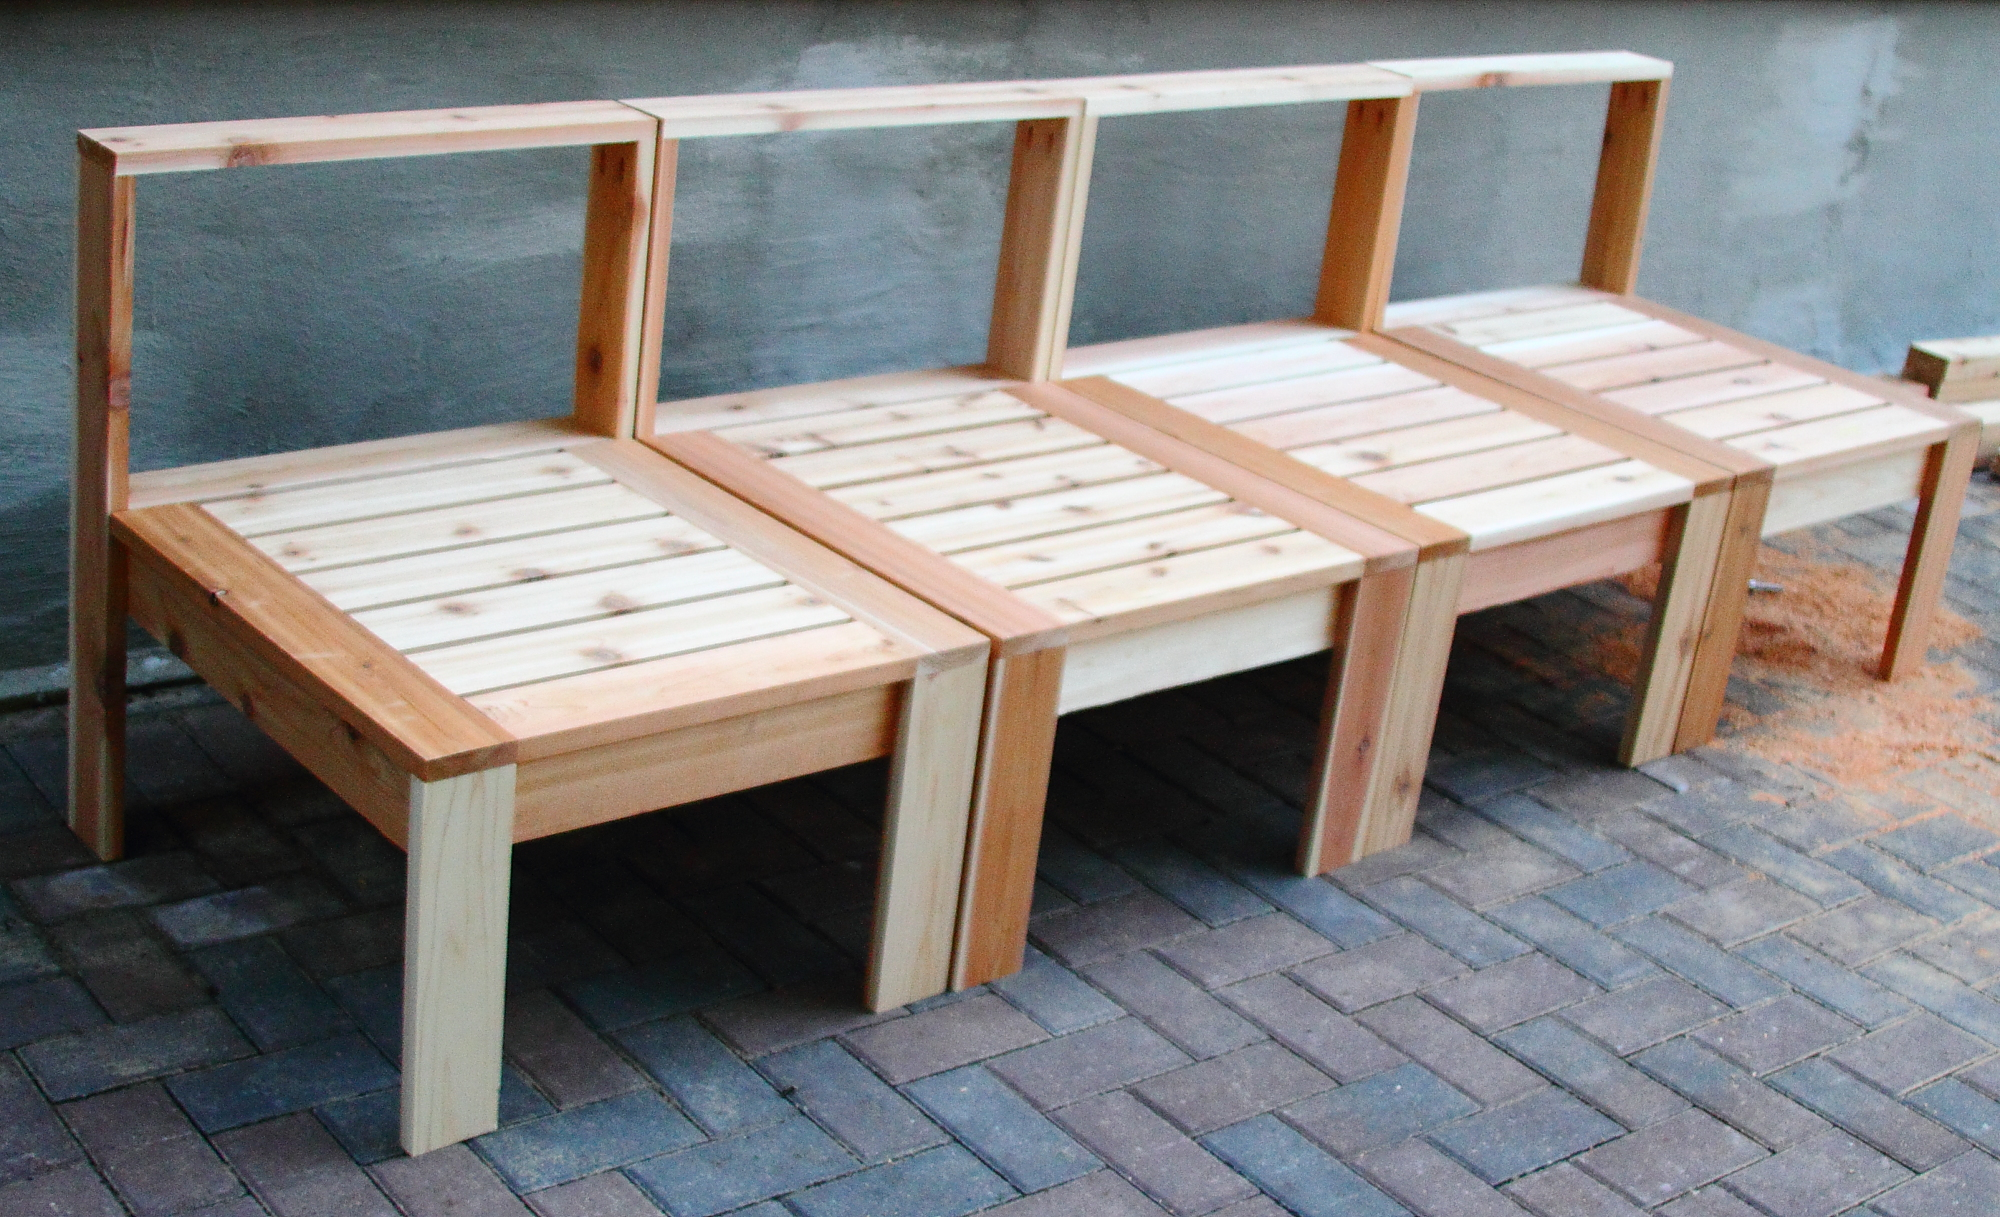 Woodwork diy patio furniture pdf plans for Homemade outdoor furniture plans